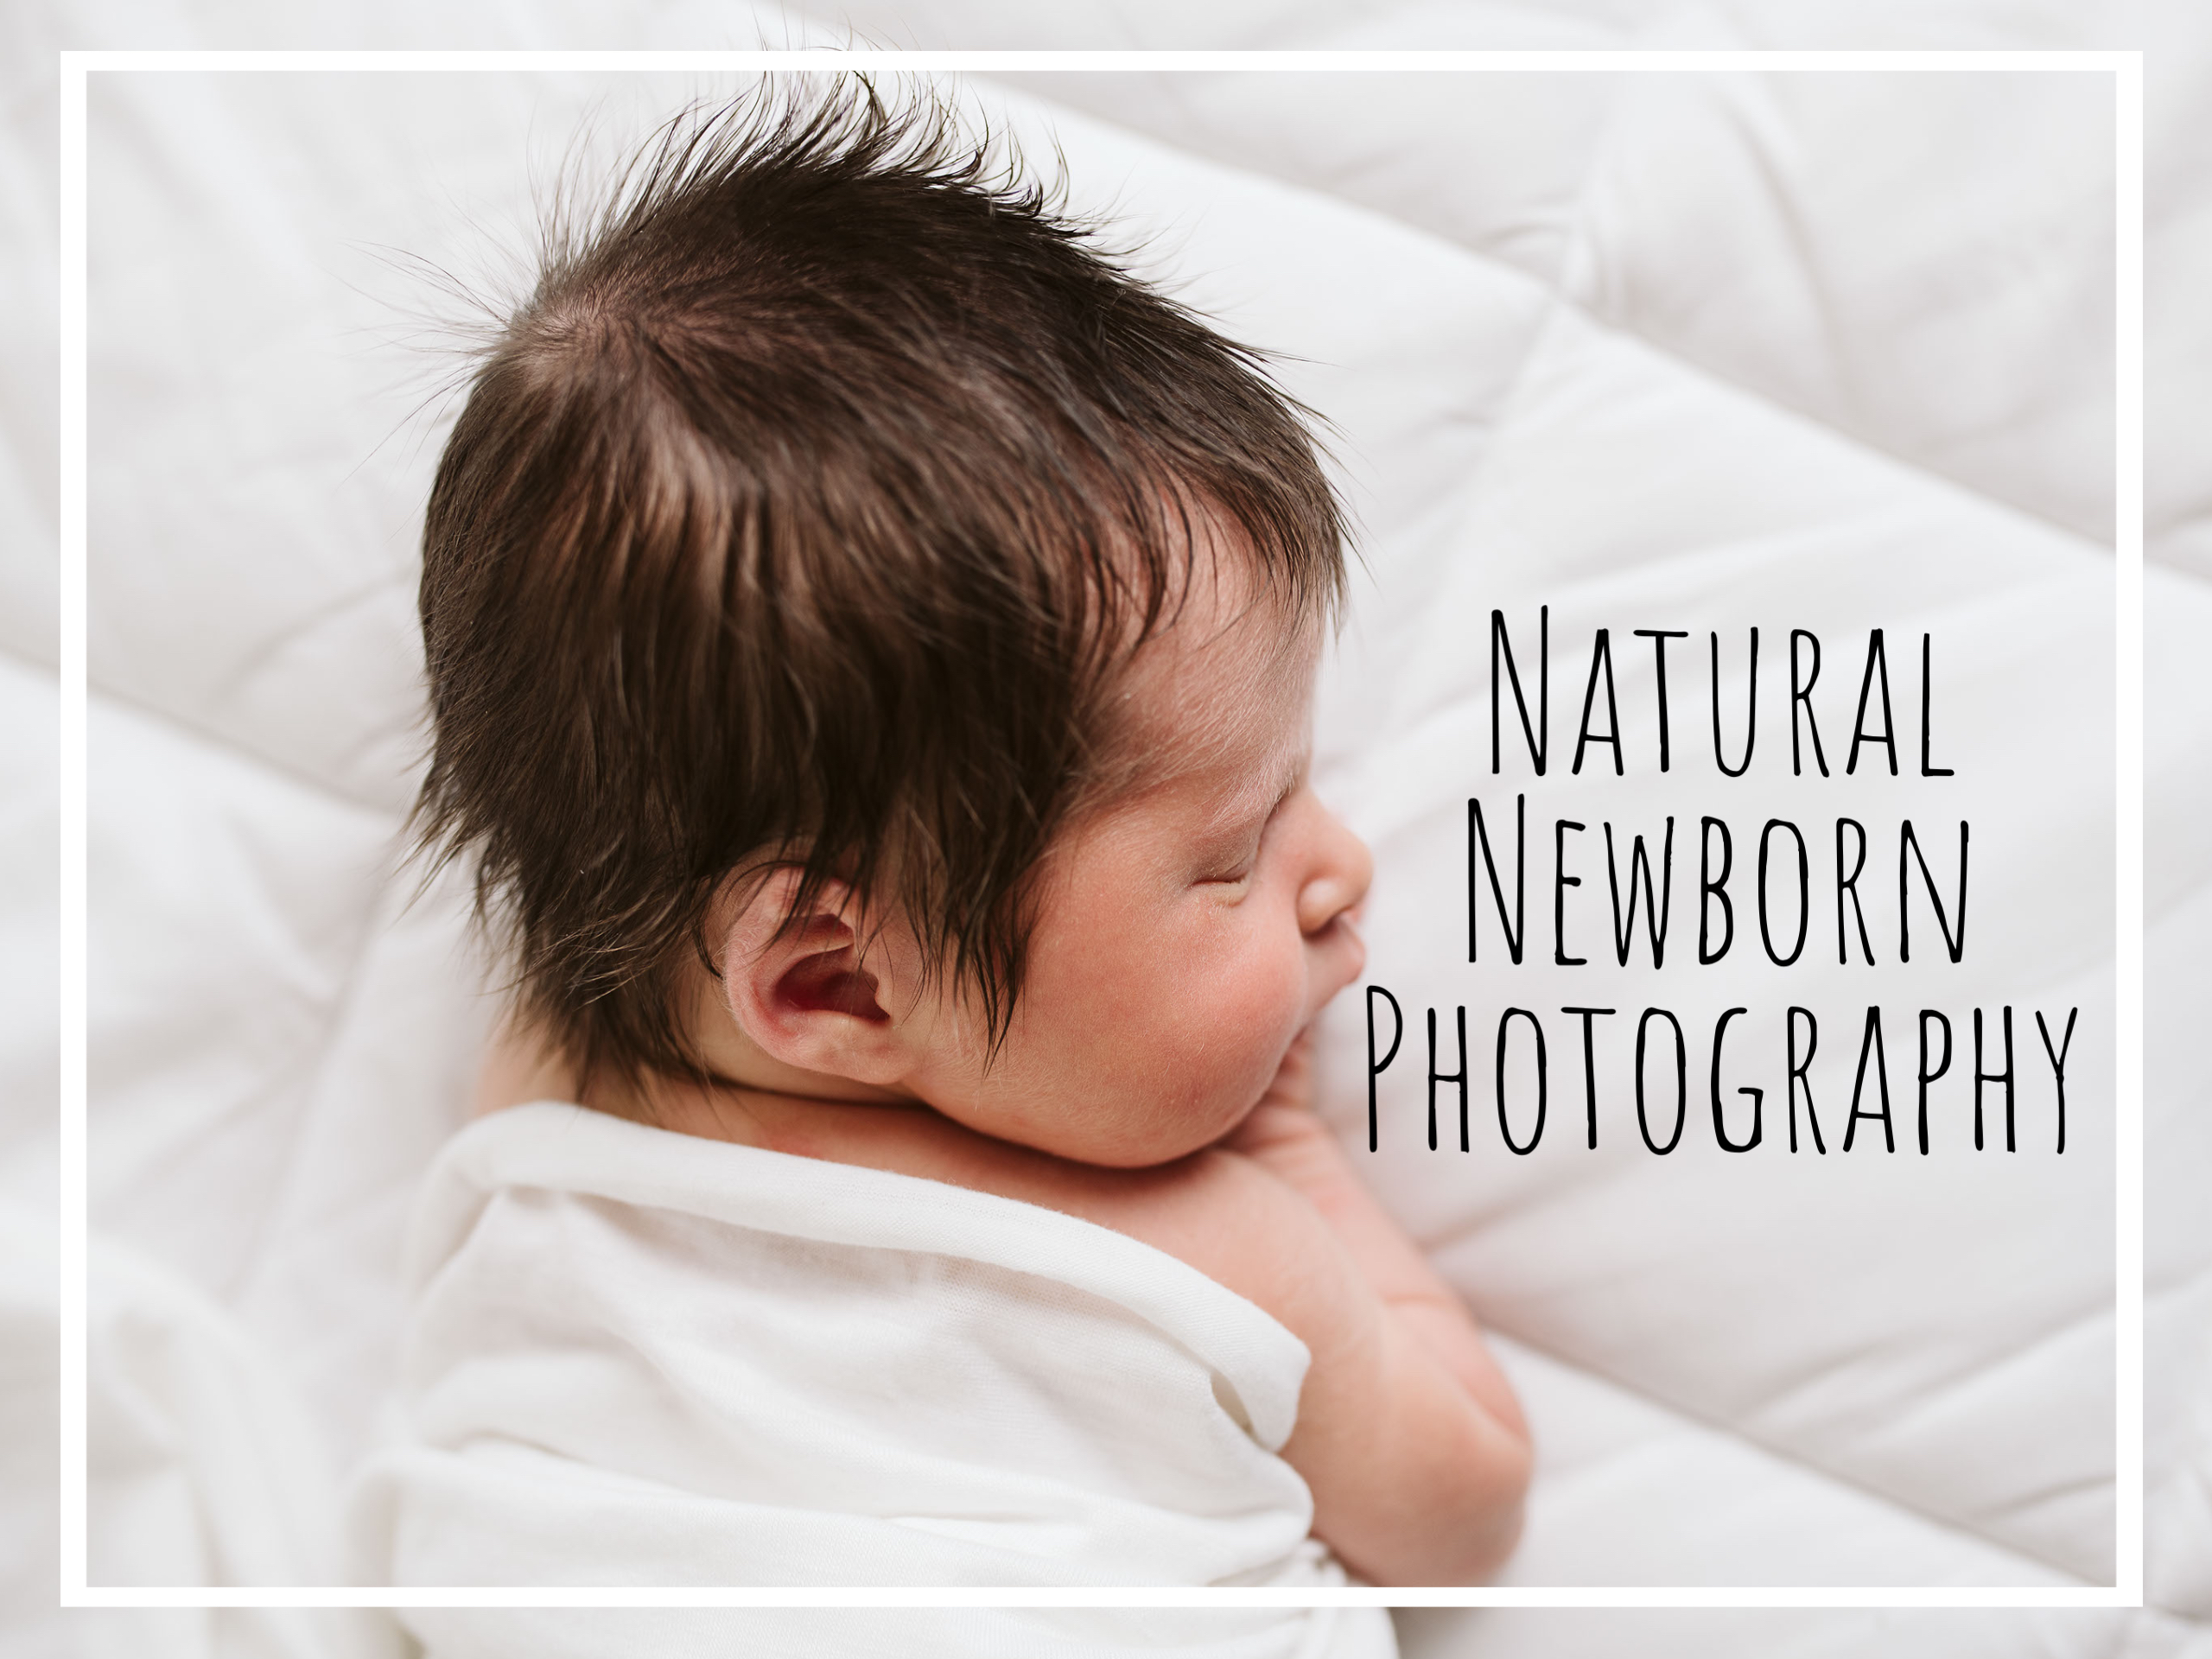 Classic, Simple, Natural Newborn Photography